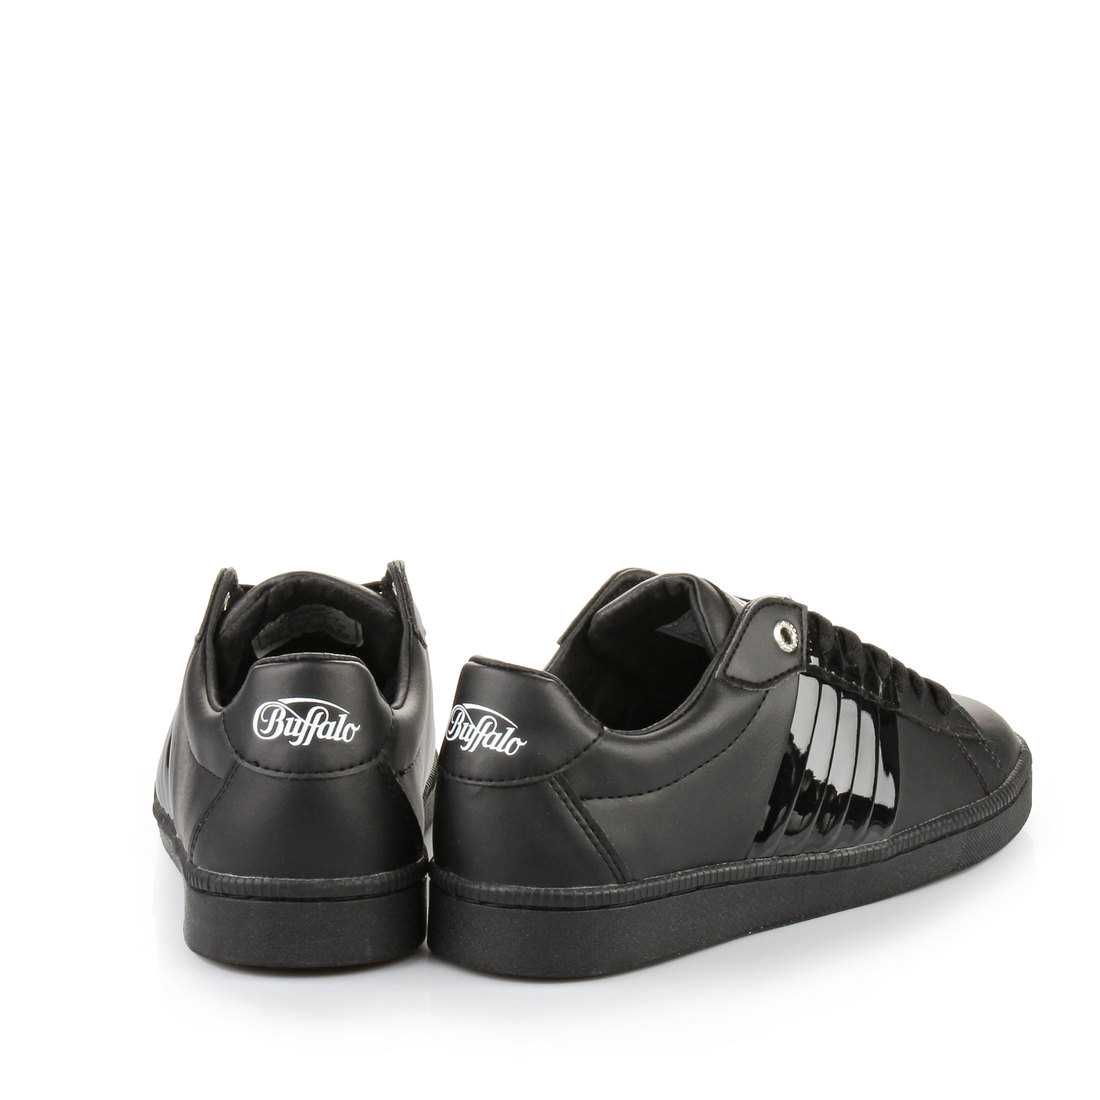 buffalo gills sneaker in schwarz online im buffalo online shop kaufen buffalo online shop. Black Bedroom Furniture Sets. Home Design Ideas